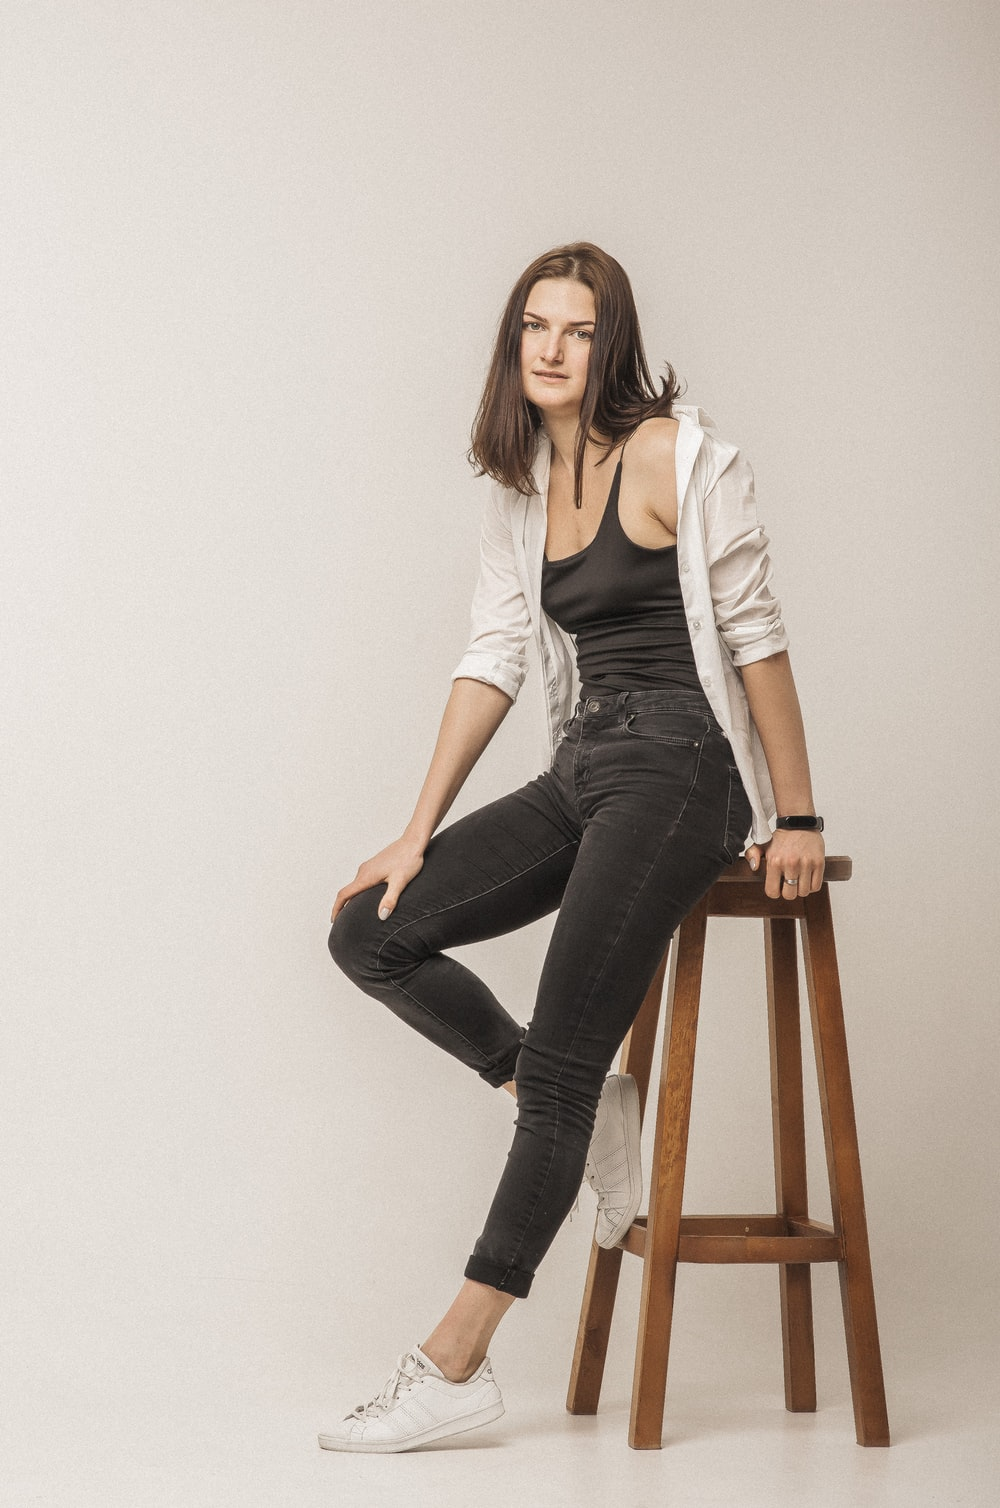 woman in white long sleeve shirt and black denim jeans sitting on brown wooden chair